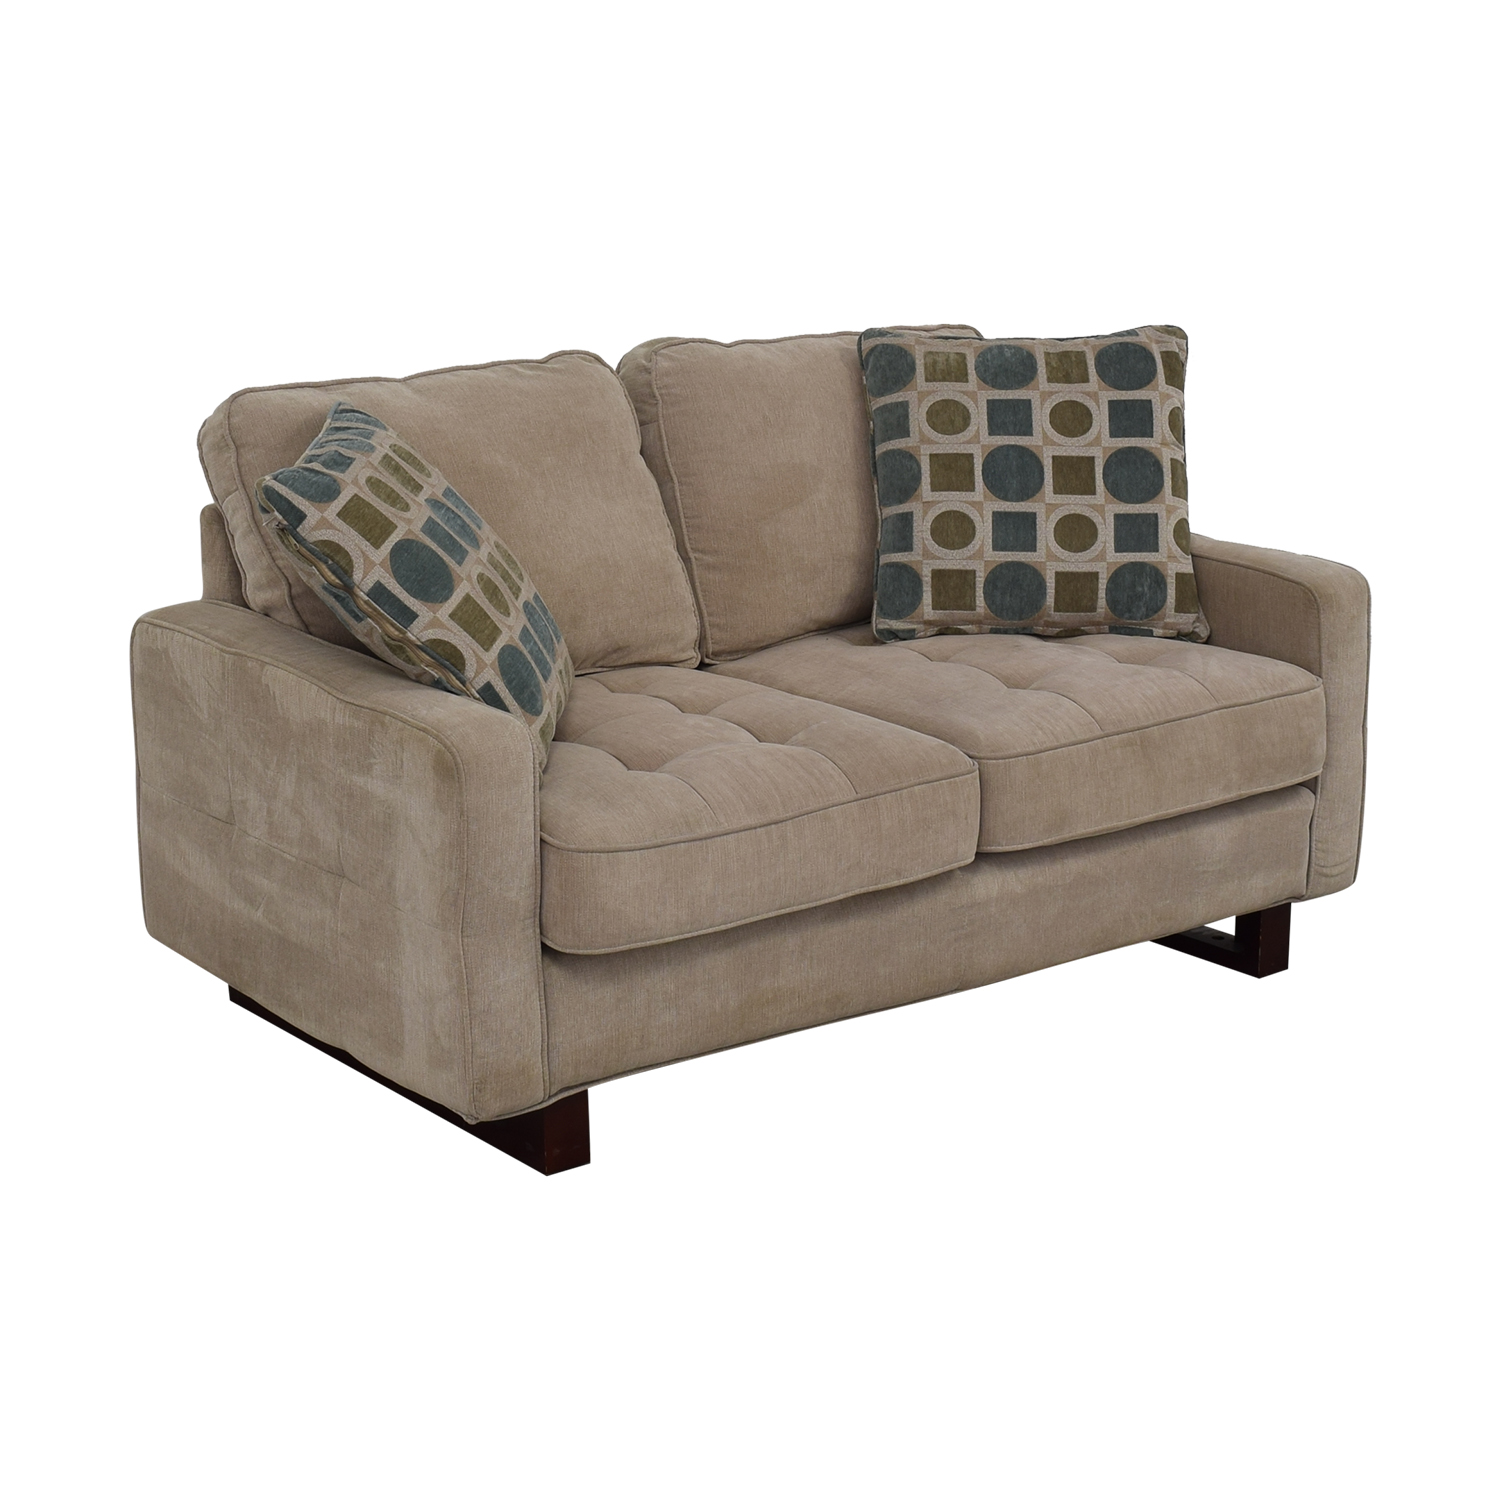 West Elm West Elm Beige Two Cushion Loveseat coupon